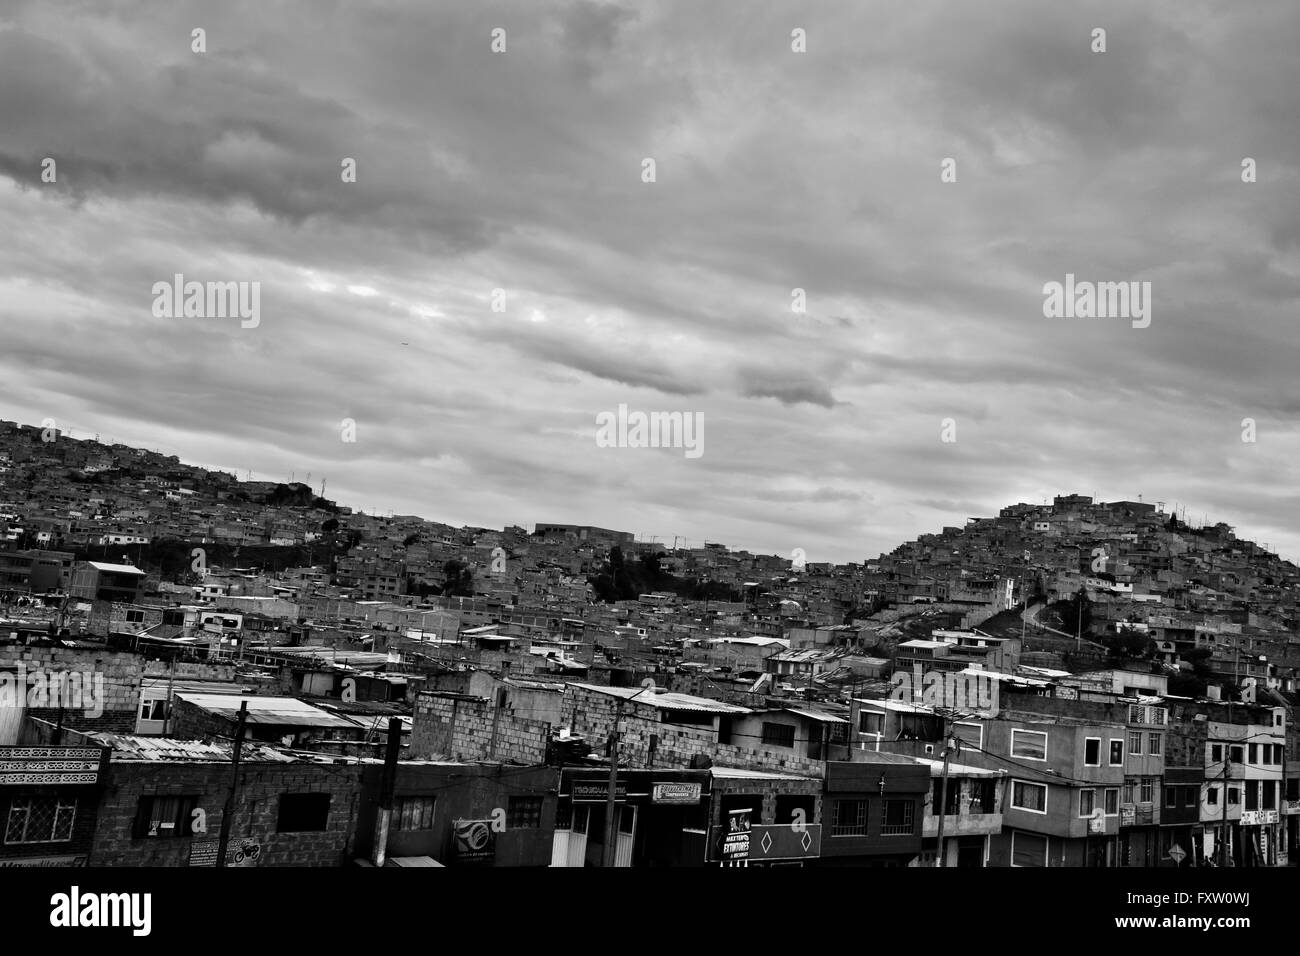 A view of a shanty town, where a majority of house churches and religious communities are located, in Bogota, Colombia. - Stock Image